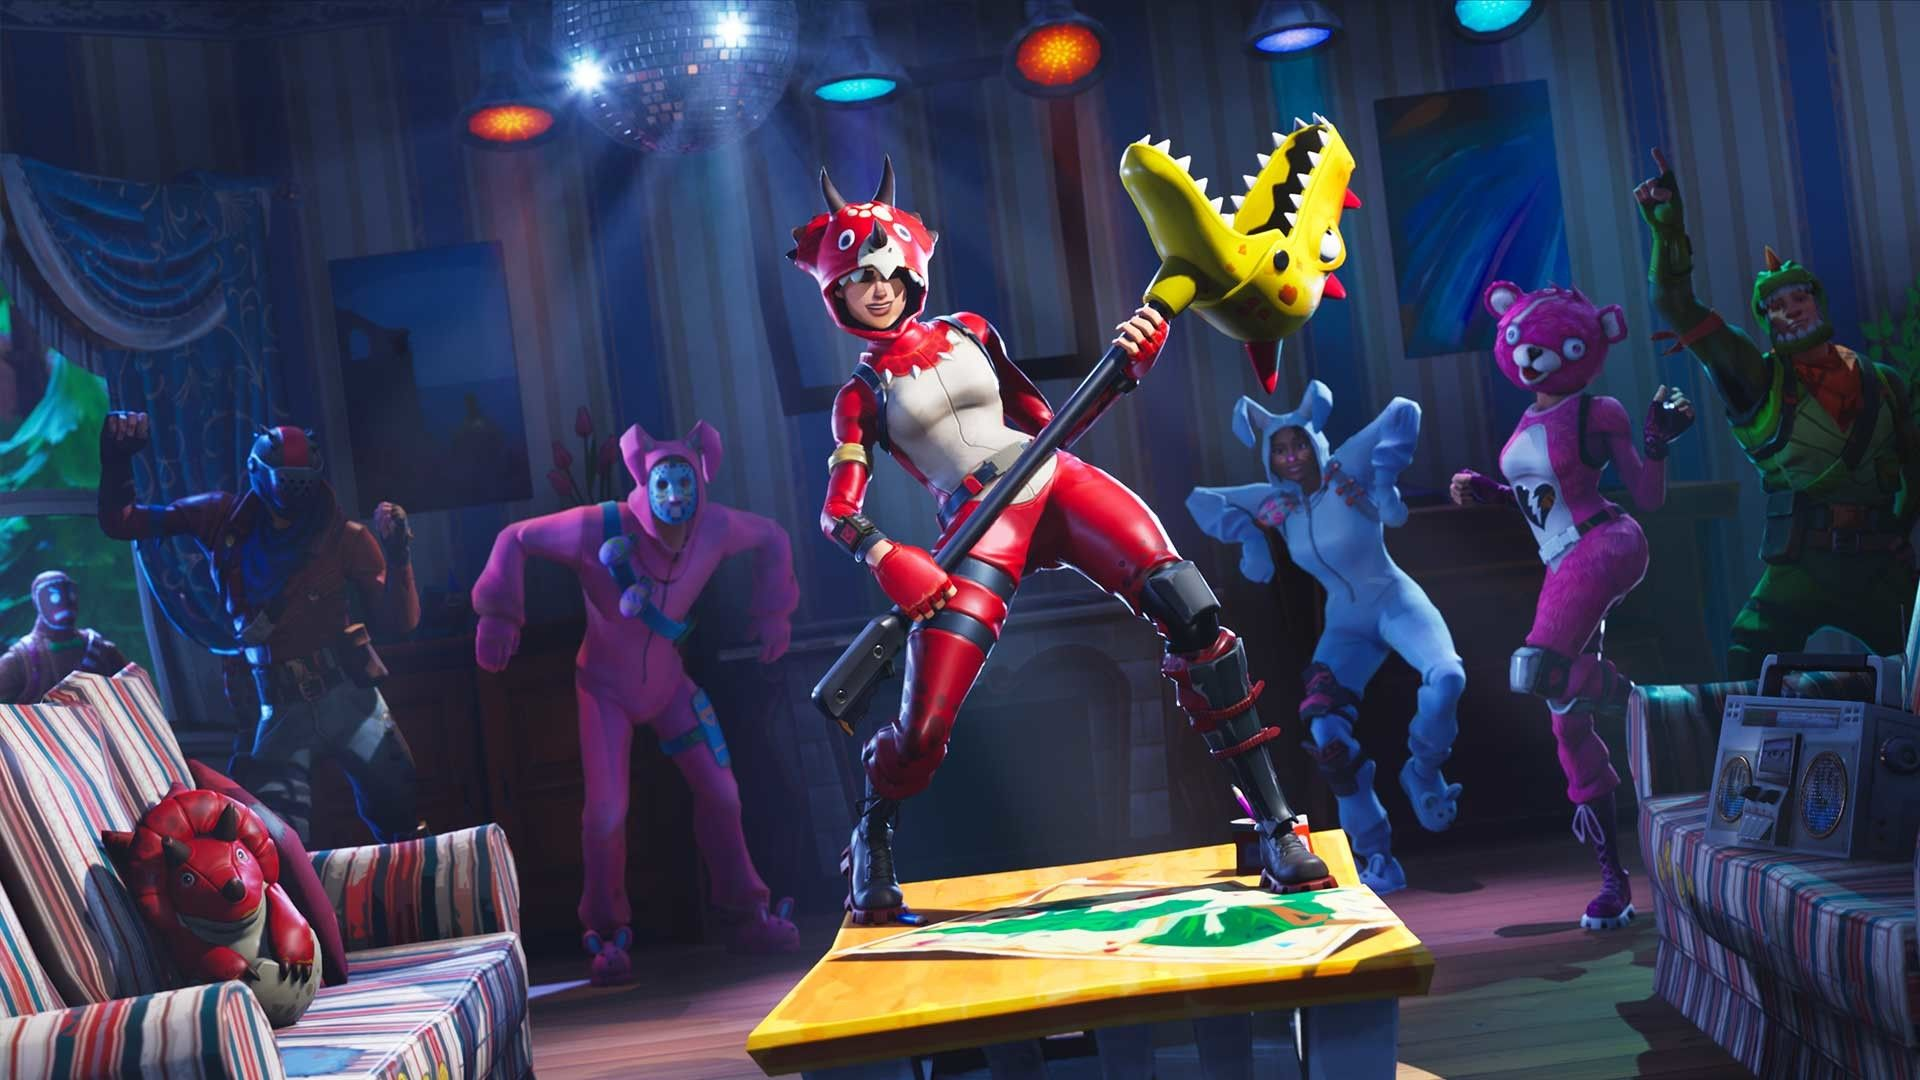 Fortnite Dance Wallpapers Top Free Fortnite Dance